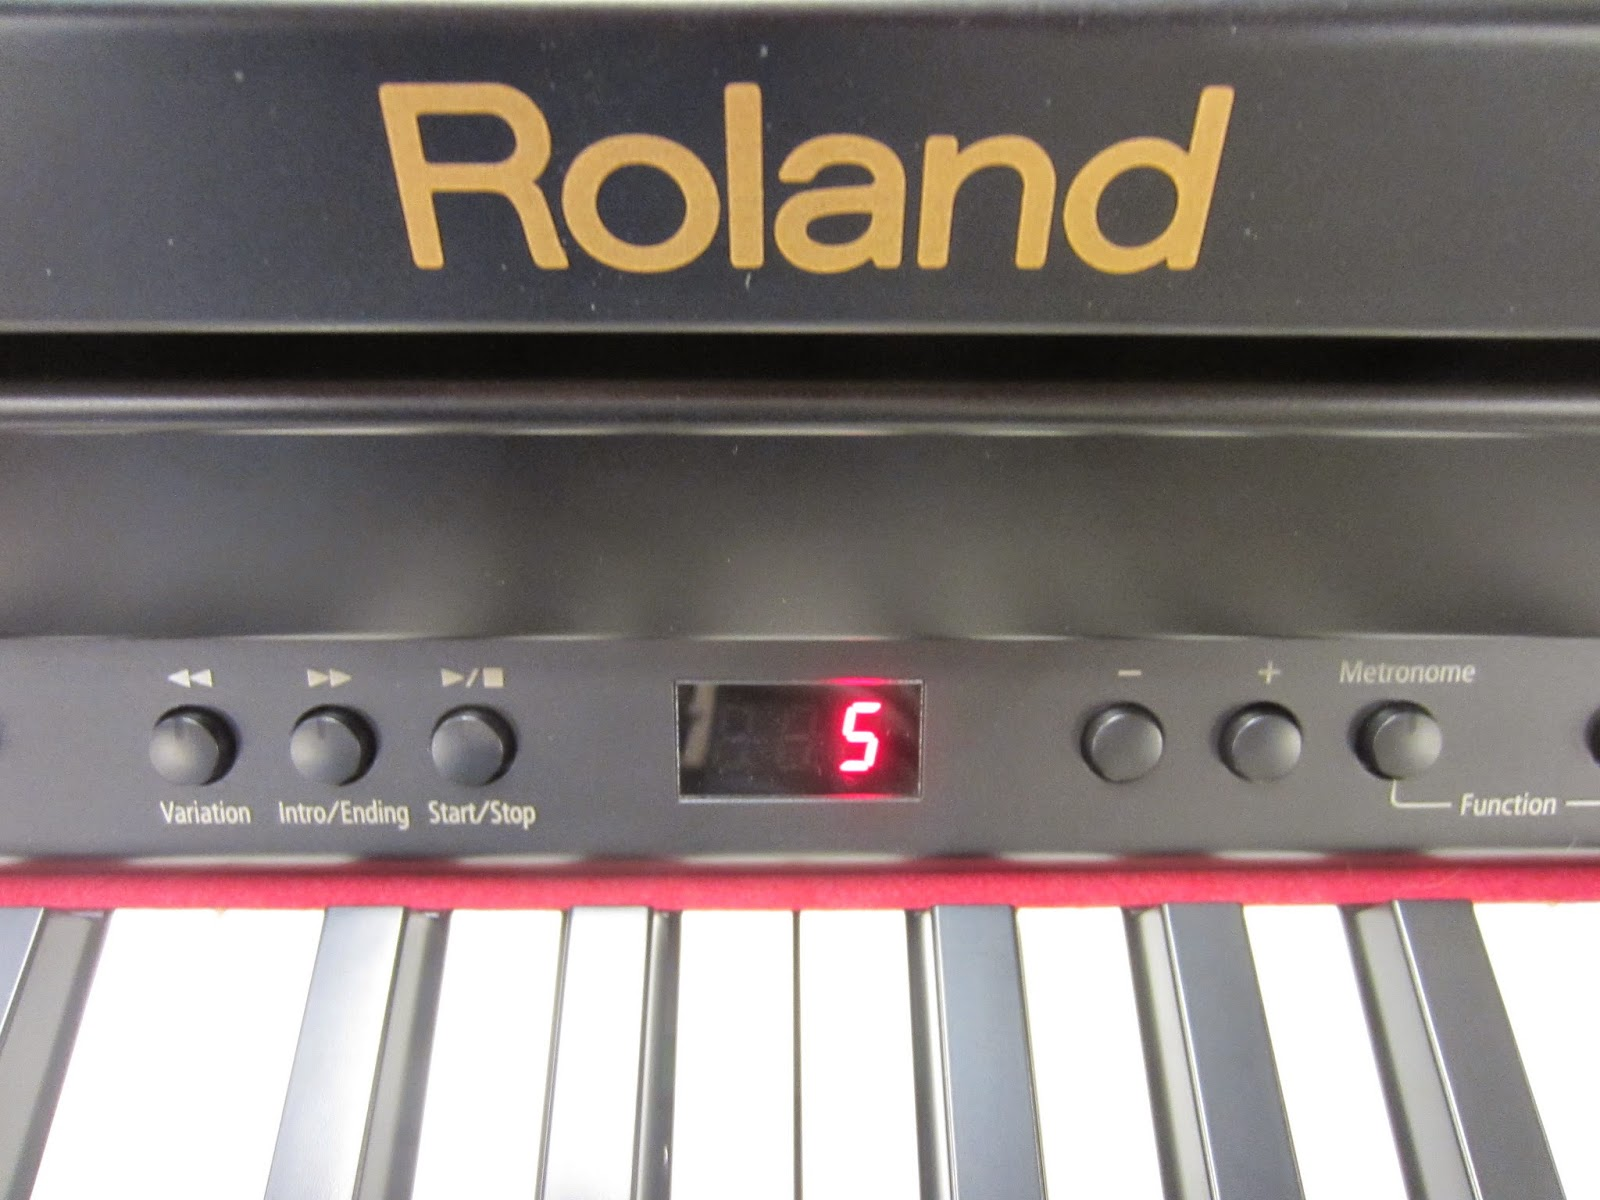 Roland RP401R and Roland F130R digital pianos